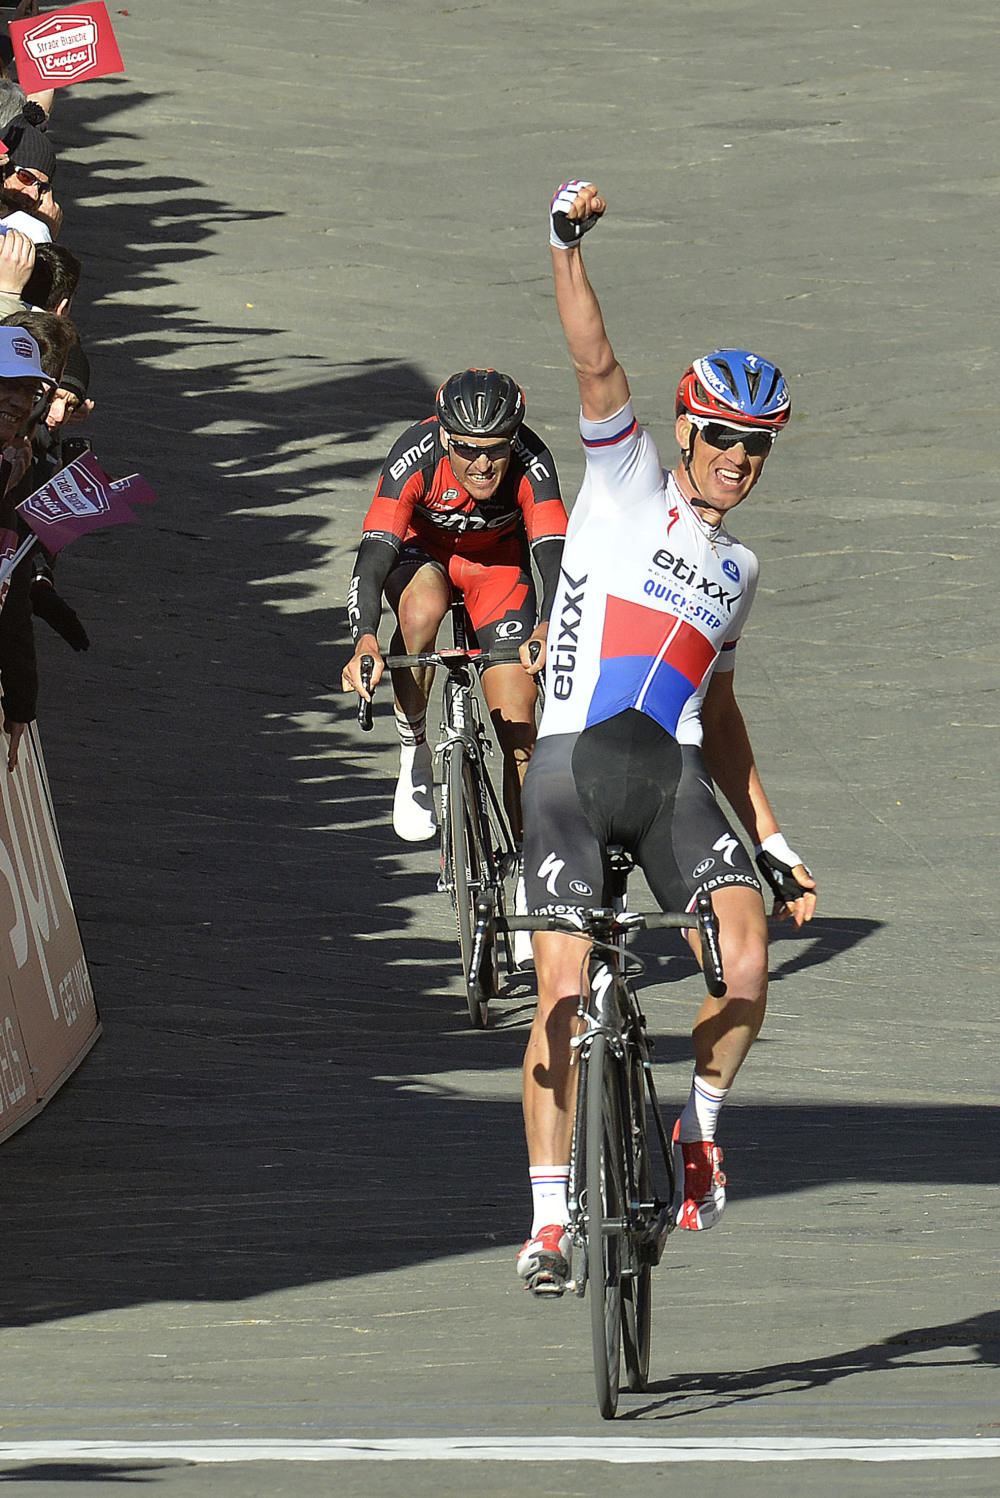 Strade Bianche, trionfa Stybar: le foto